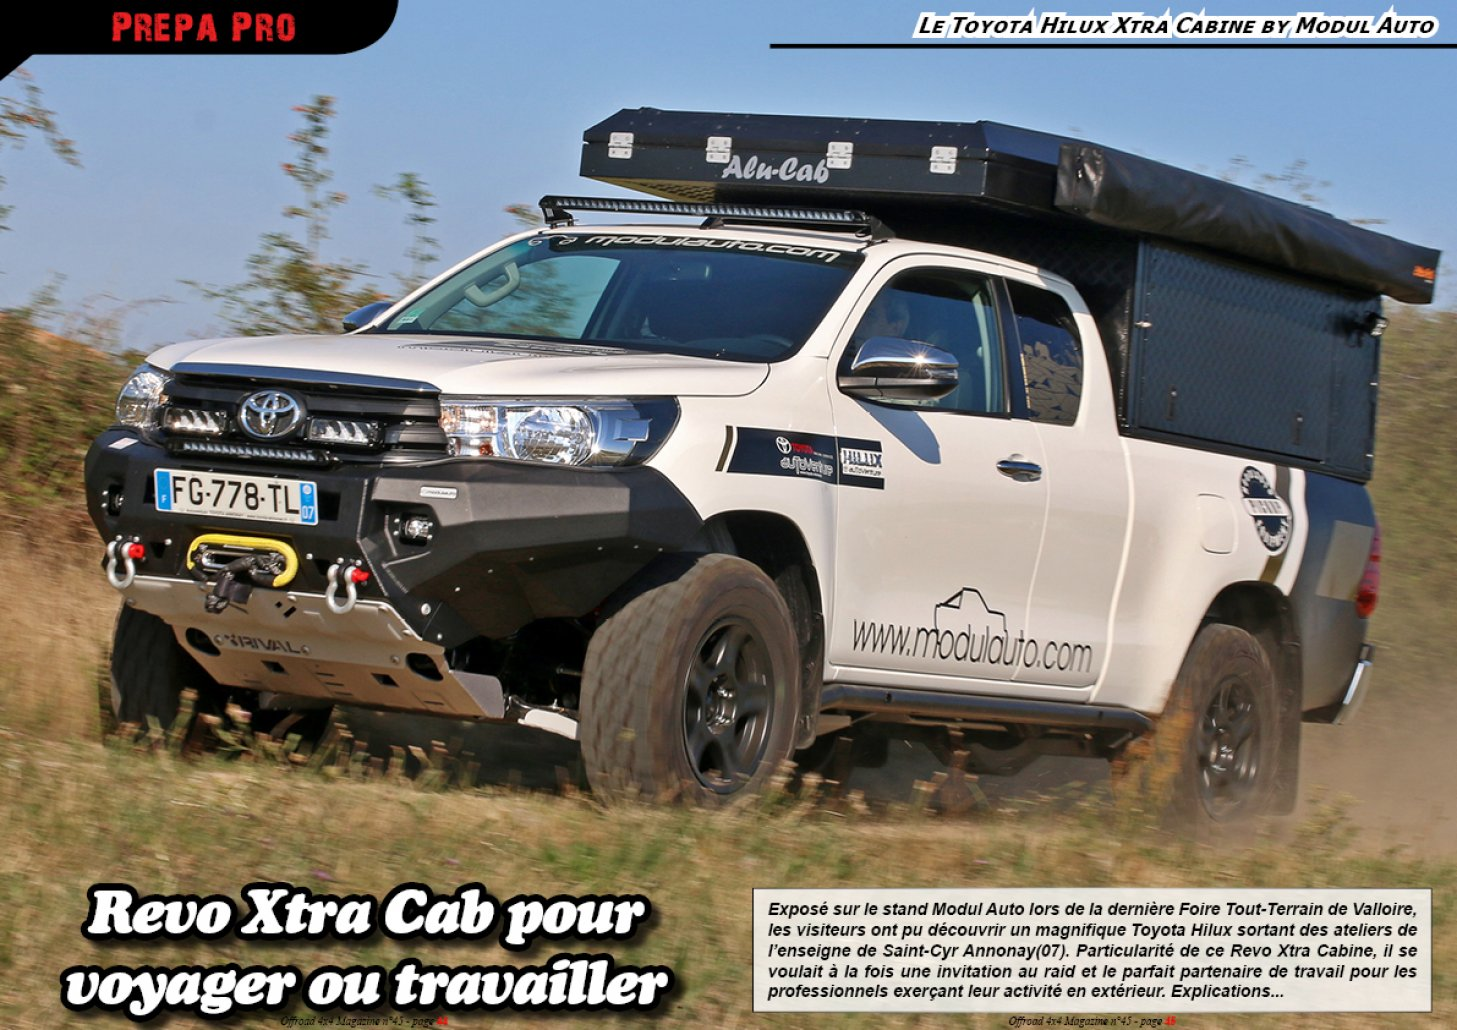 Le Toyota Hilux Xtra Cabine by Modul Auto